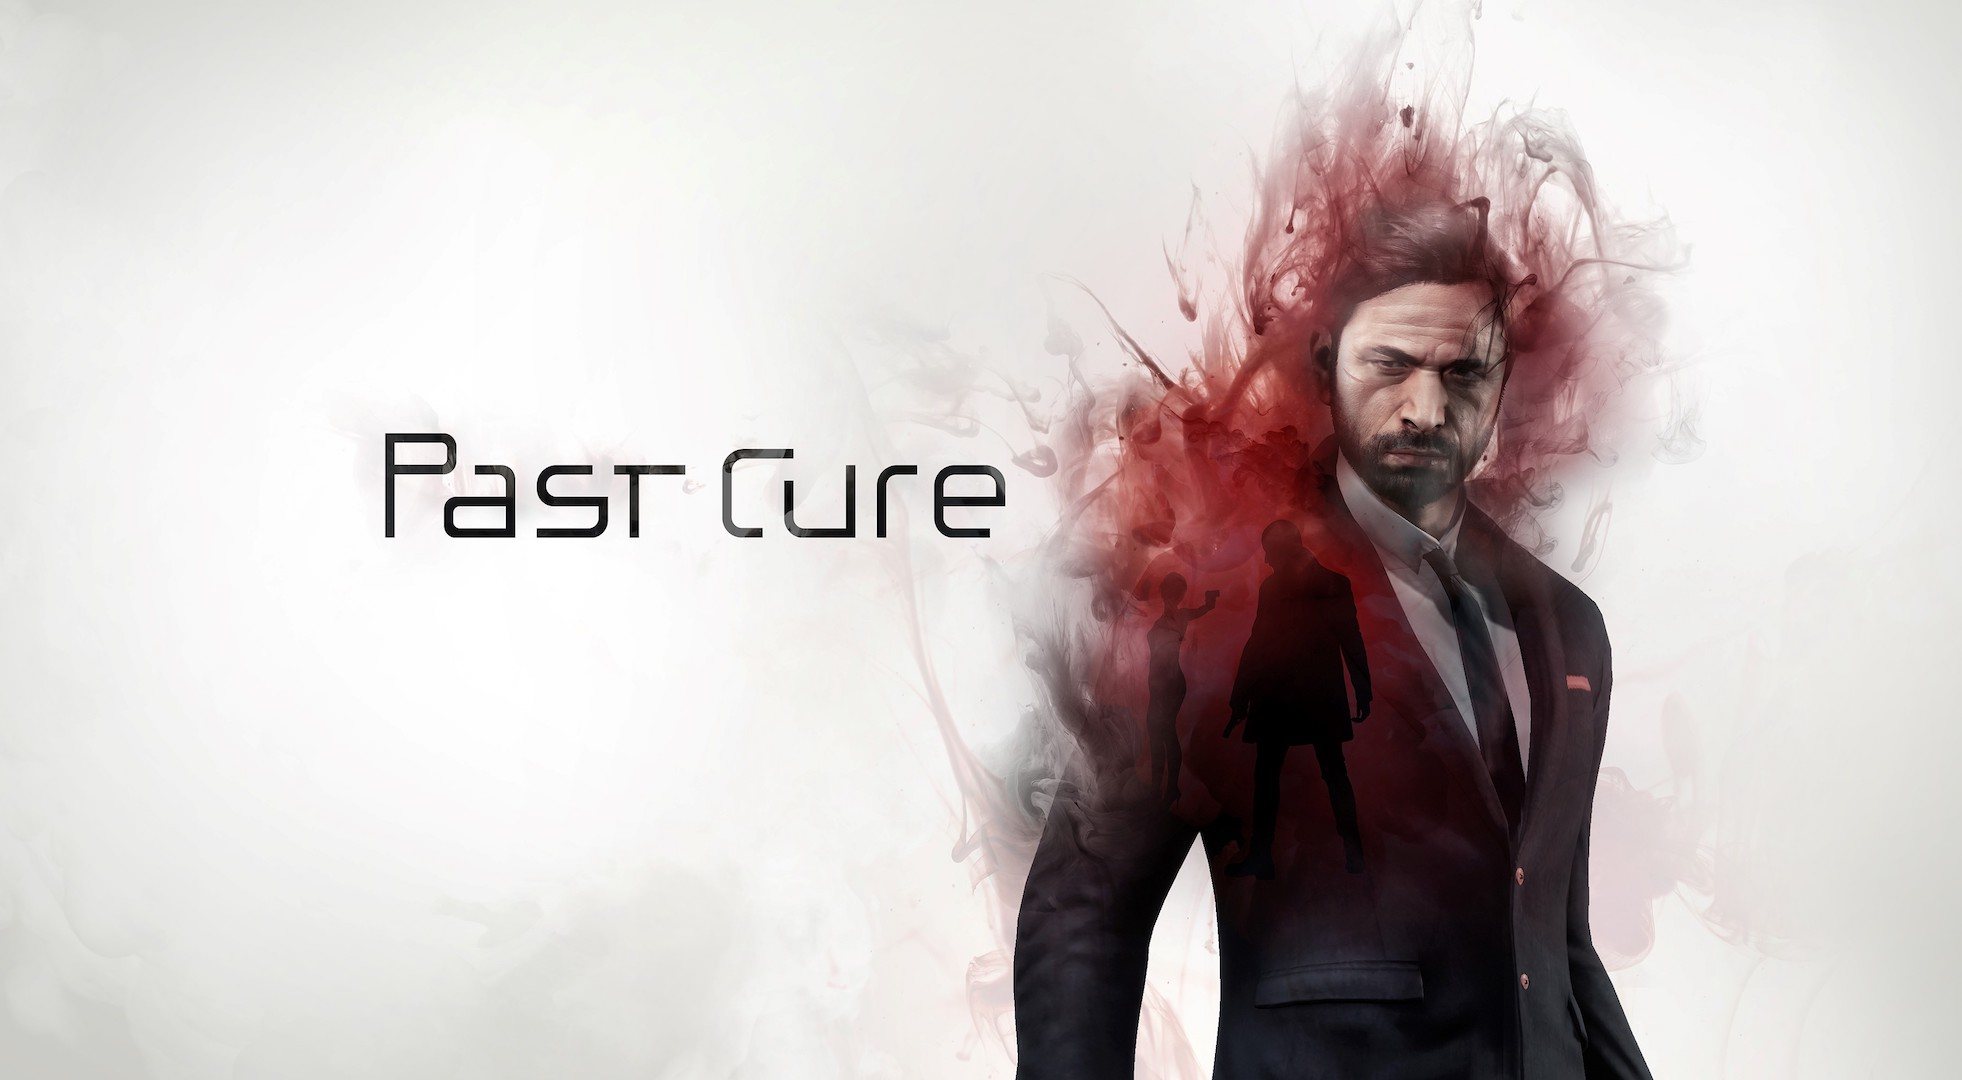 Past Cure – PS4 | Review